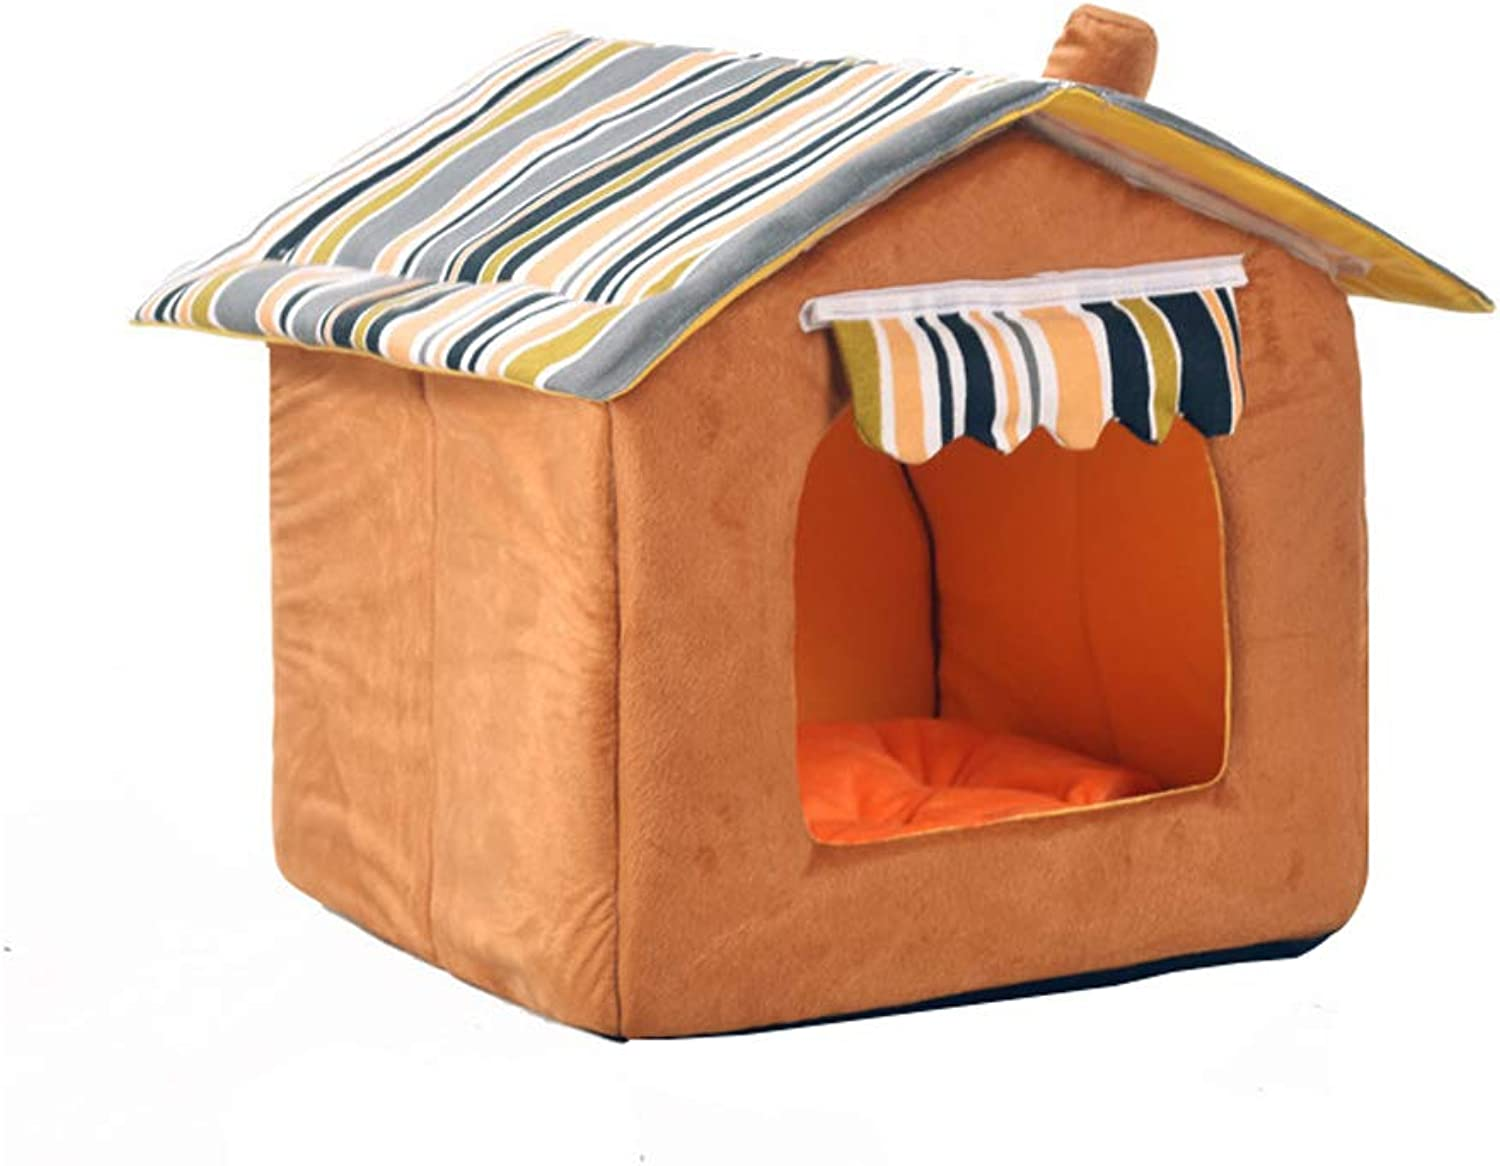 Kennel QIQIDEDIAN VIP Teddy Bear golden Retriever Pet Nest Small And Medium Dogs Detachable Cat Small House Cat Worm (color   Brown, Size   S 35  35  30)